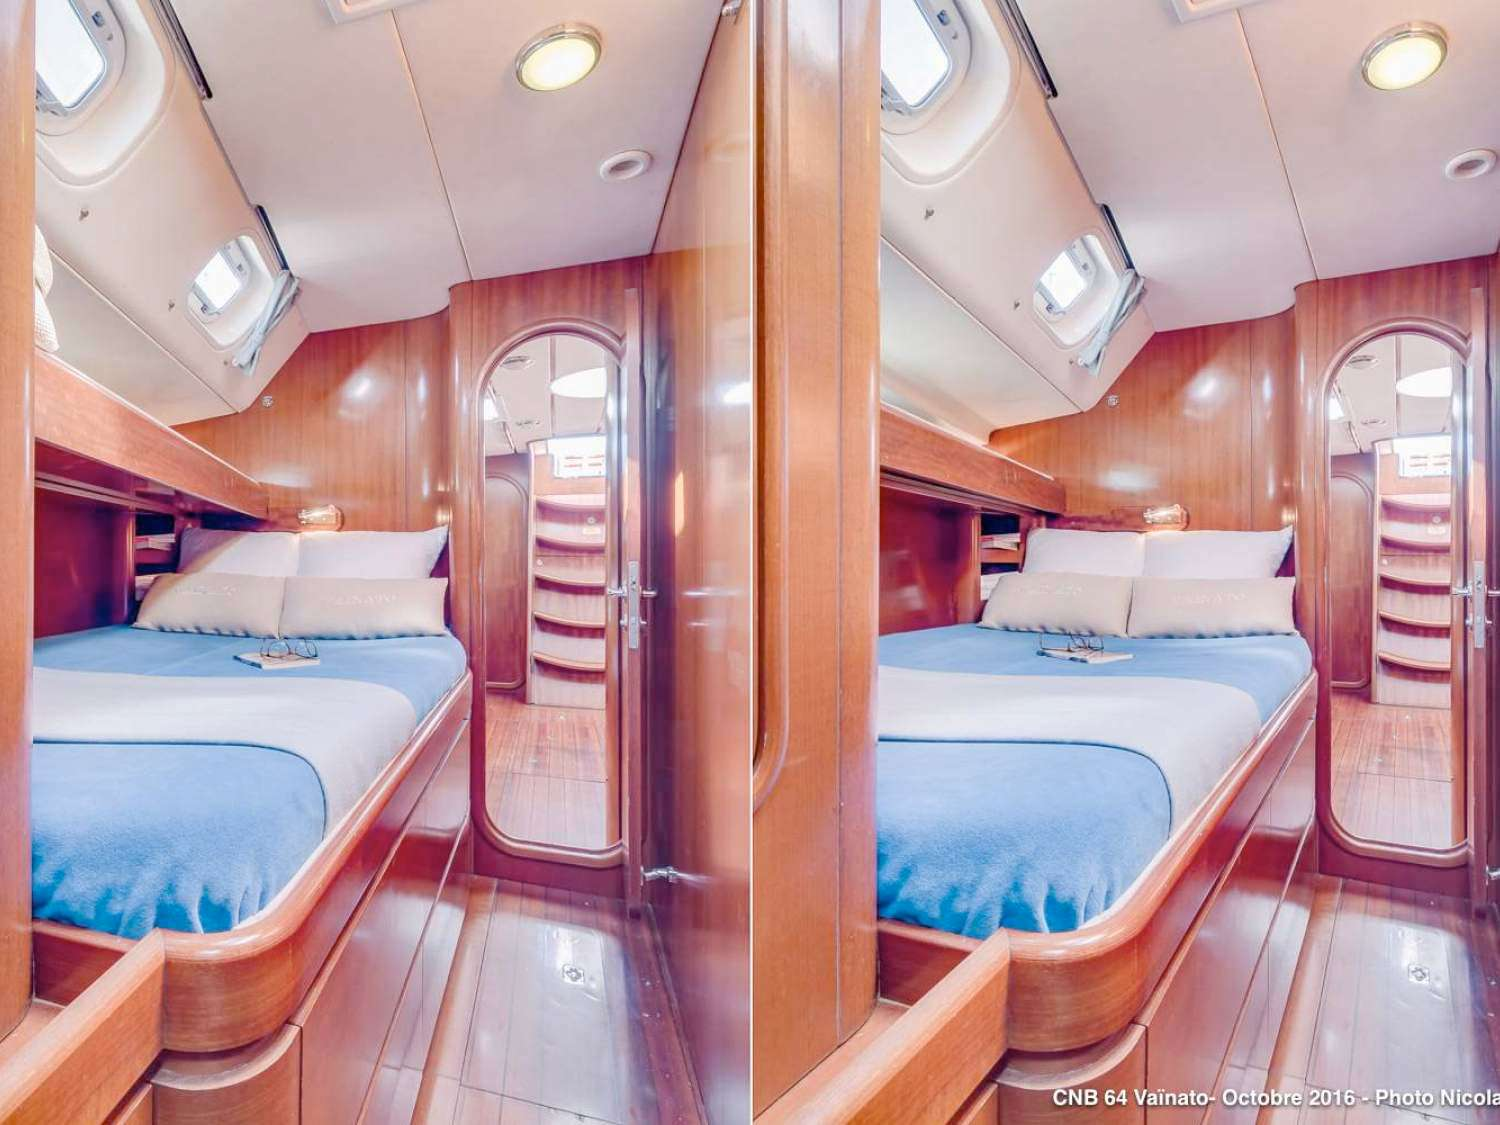 Starboard cabin with & without bunkbed